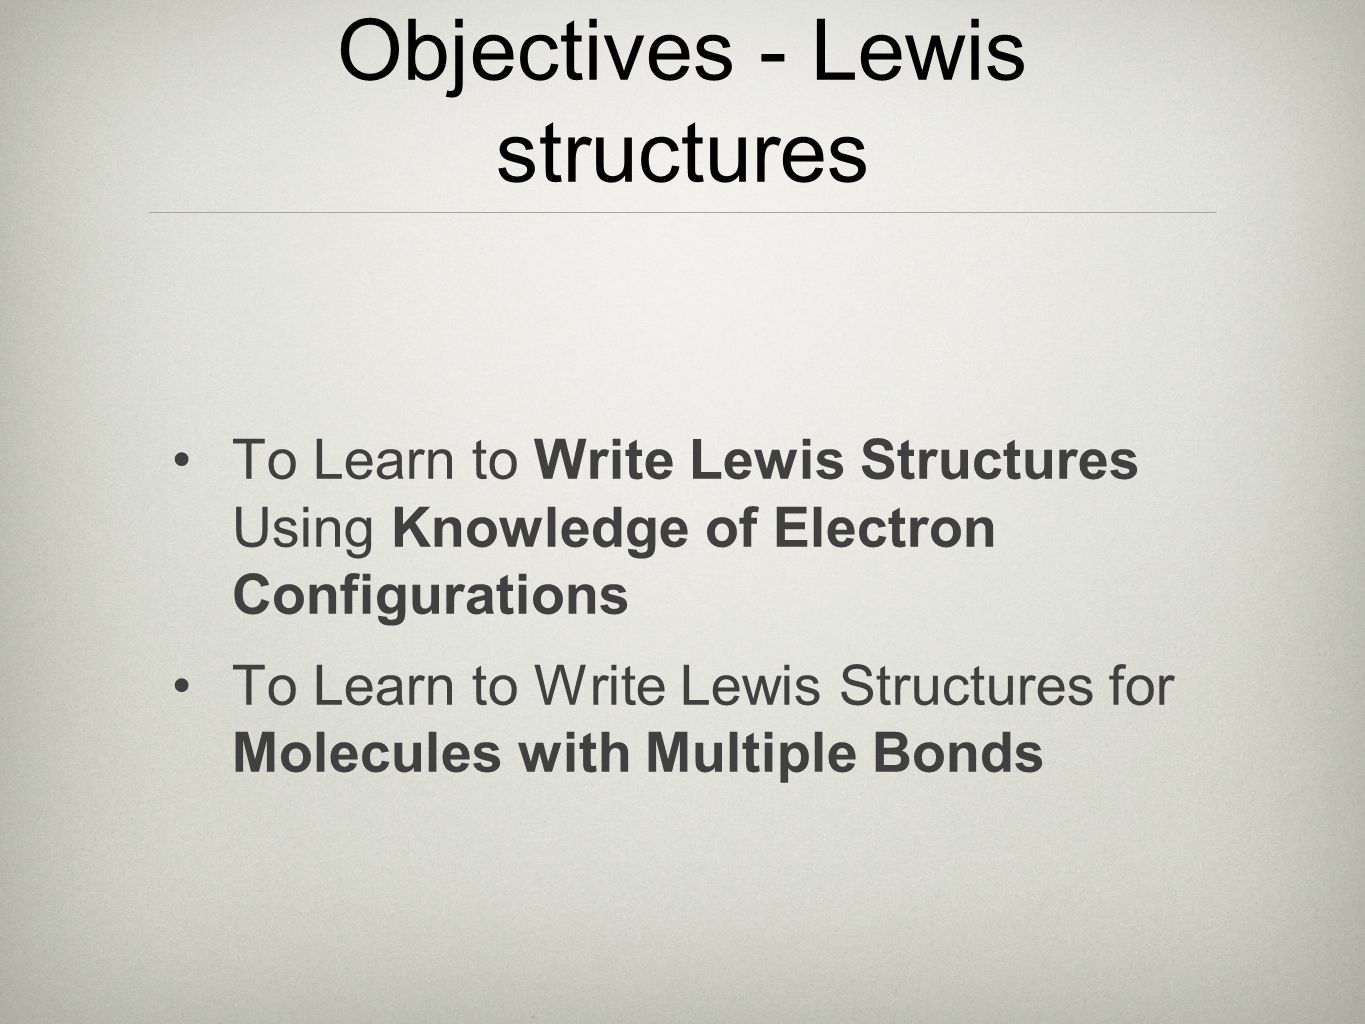 Objectives - Lewis structures